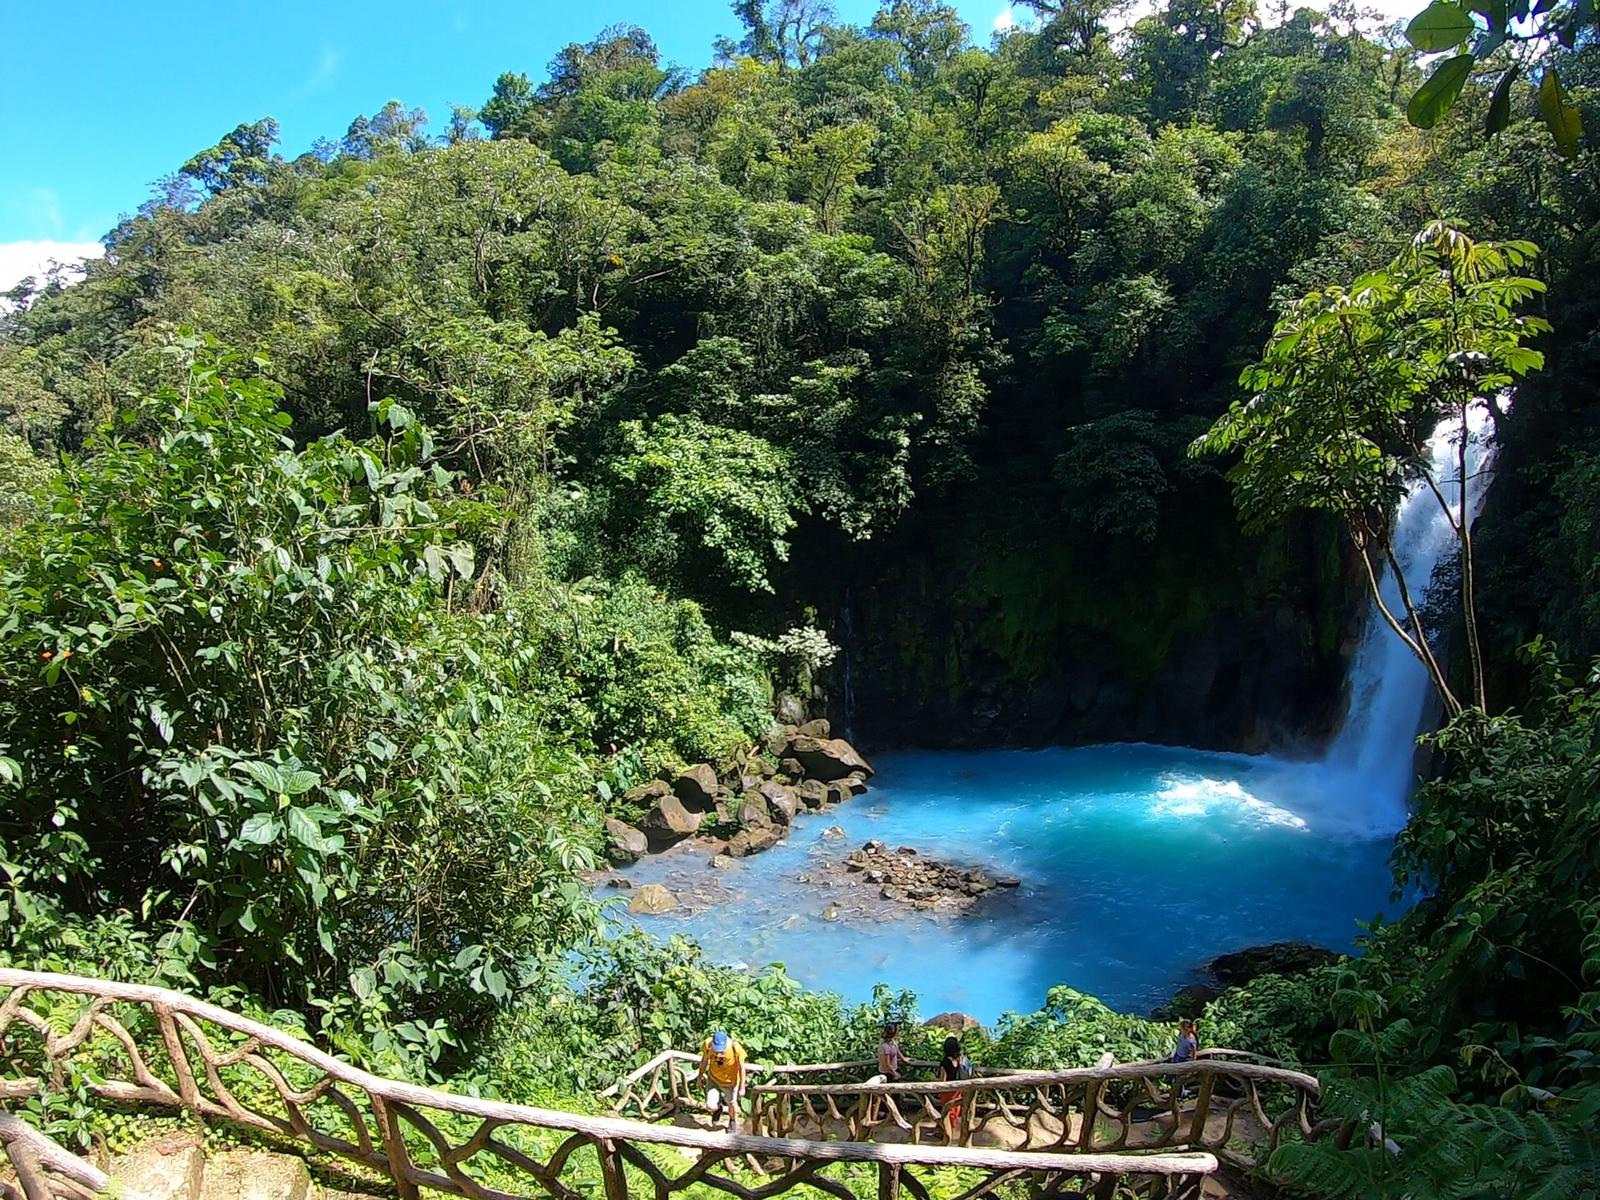 A magical day visiting Rio Celeste and the Tenorio Volcano National Park